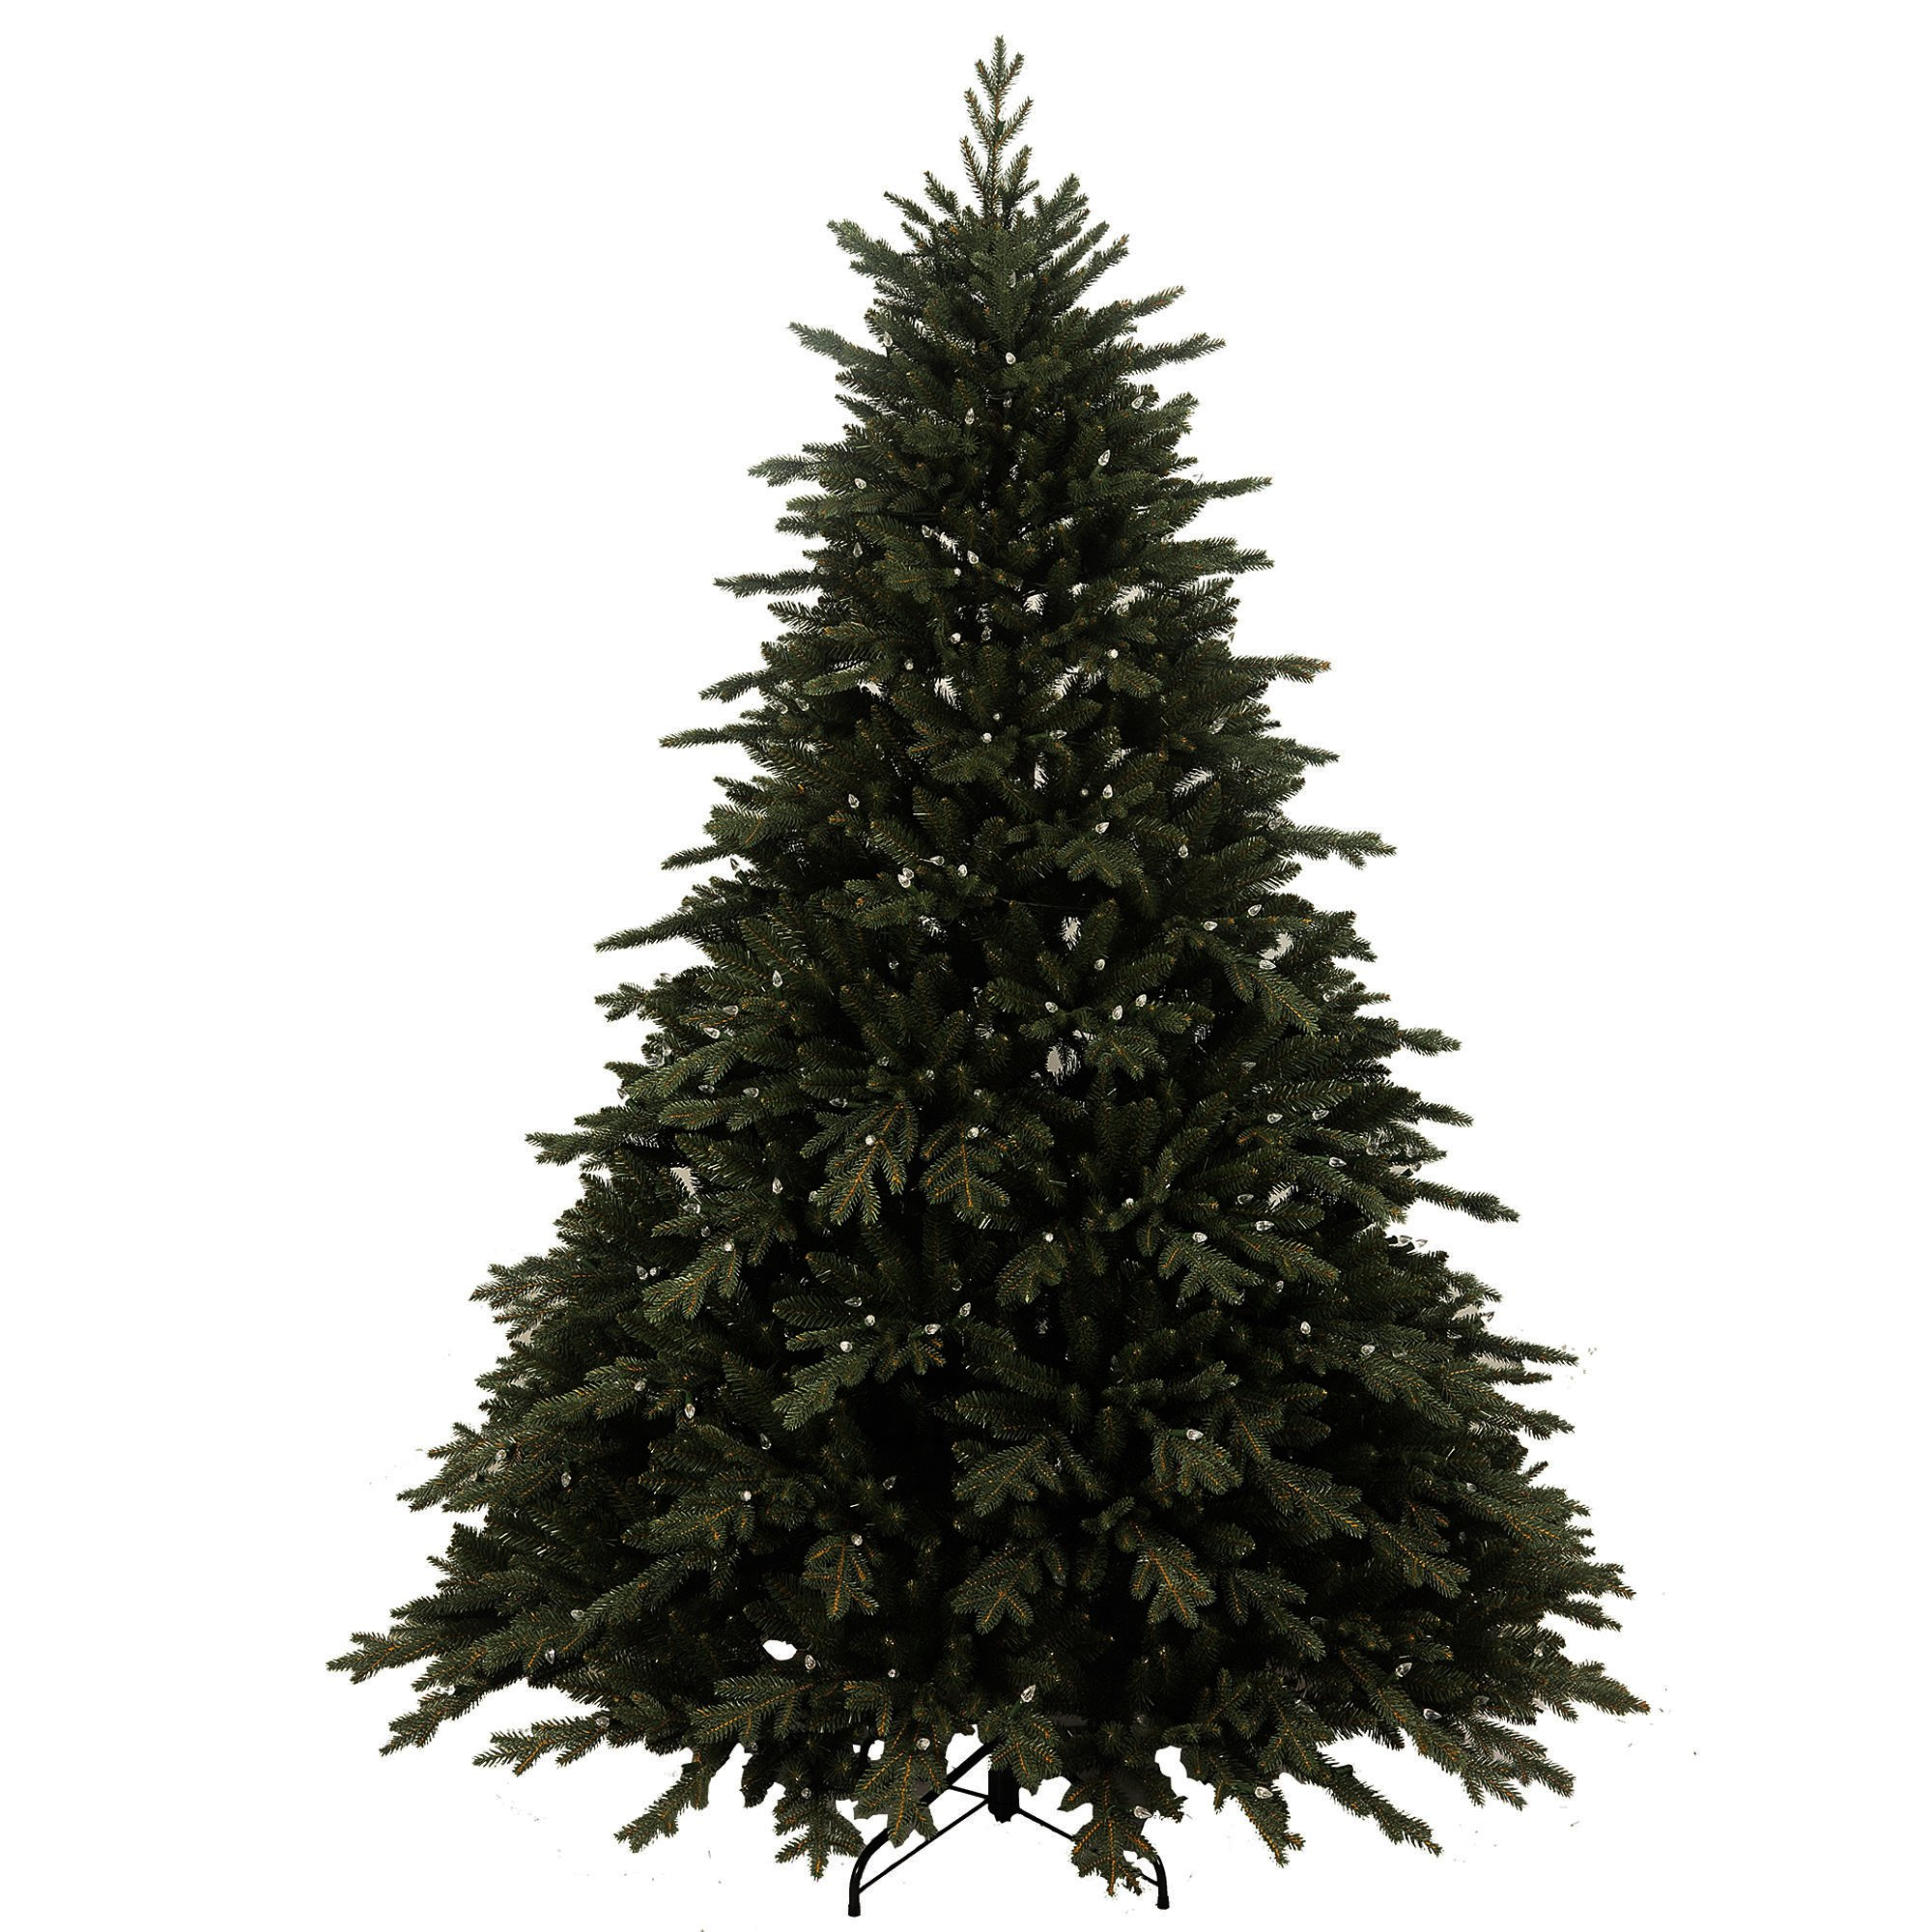 Artificial Christmas Tree. This Fake 7.5 Foot Xmas Pine Tree, Norwegian Spruce, Densely, Lush, Easy-to-shape Green Branches Looks Natural. Great For Indoor, Holiday Season Party Decor & Festive Mood. by Artificial-Christmas-Tree